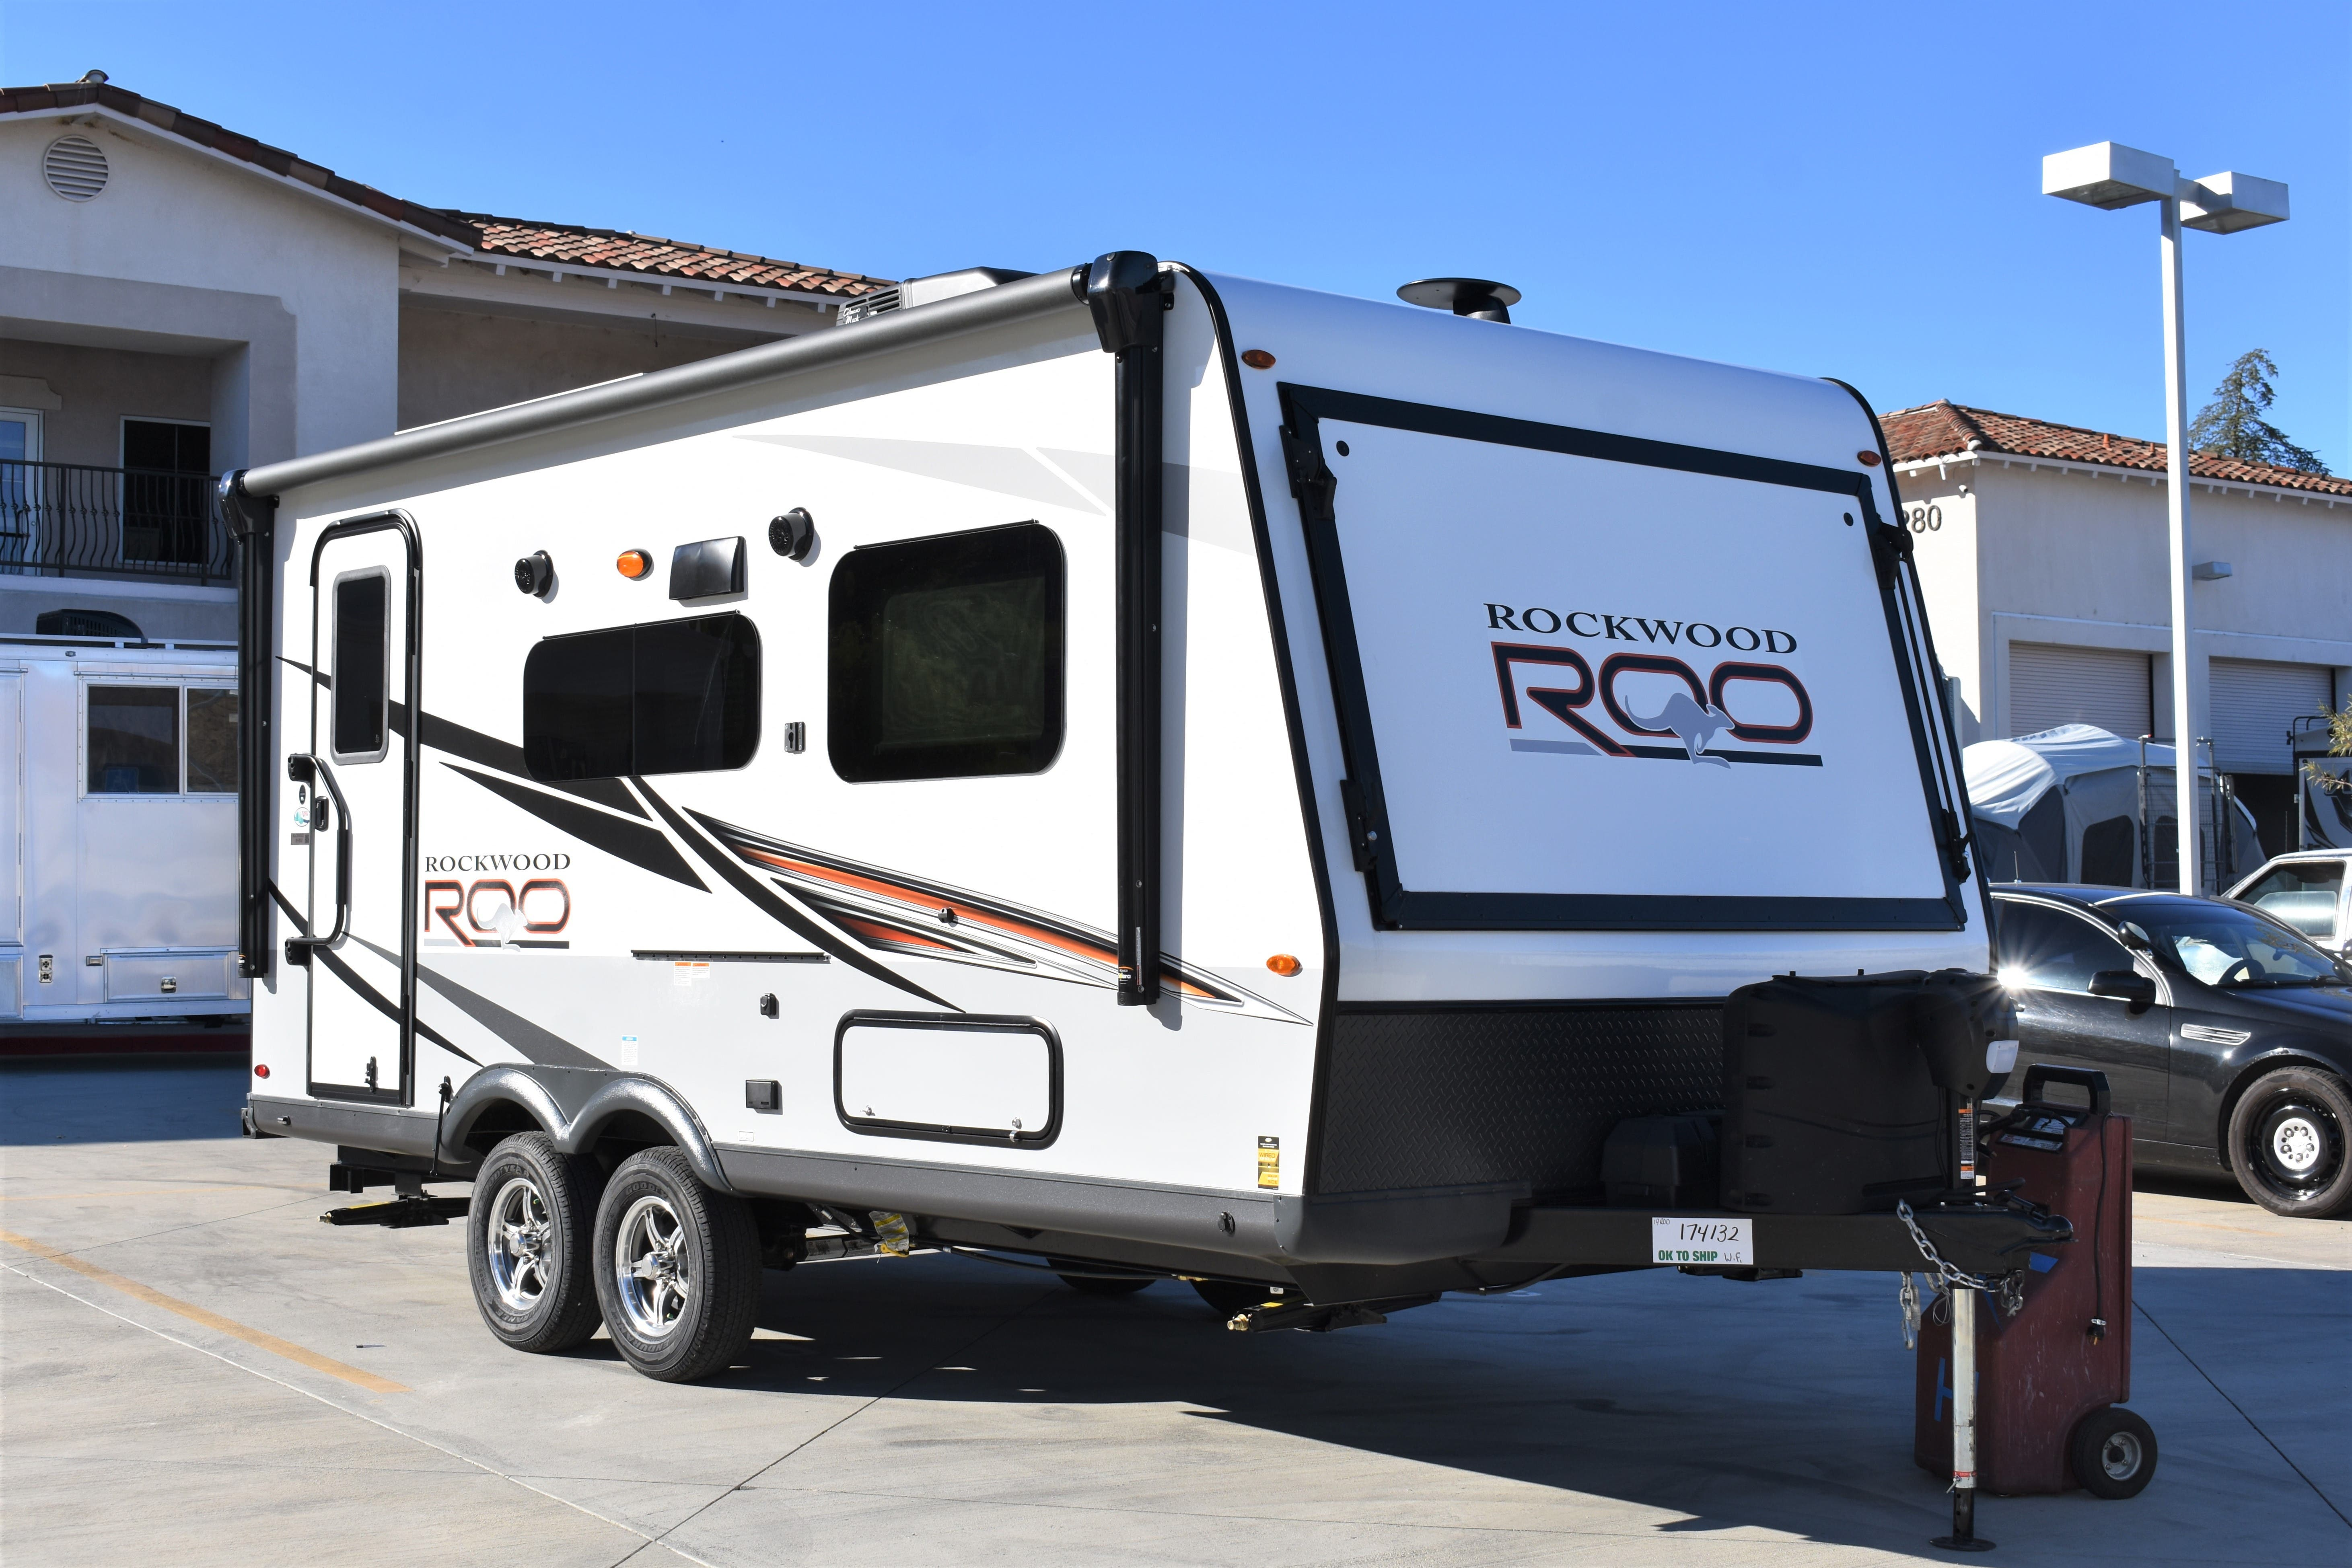 2021 Forest River Rockwood Roo 19 - Castaic, CA - 2203092 ...